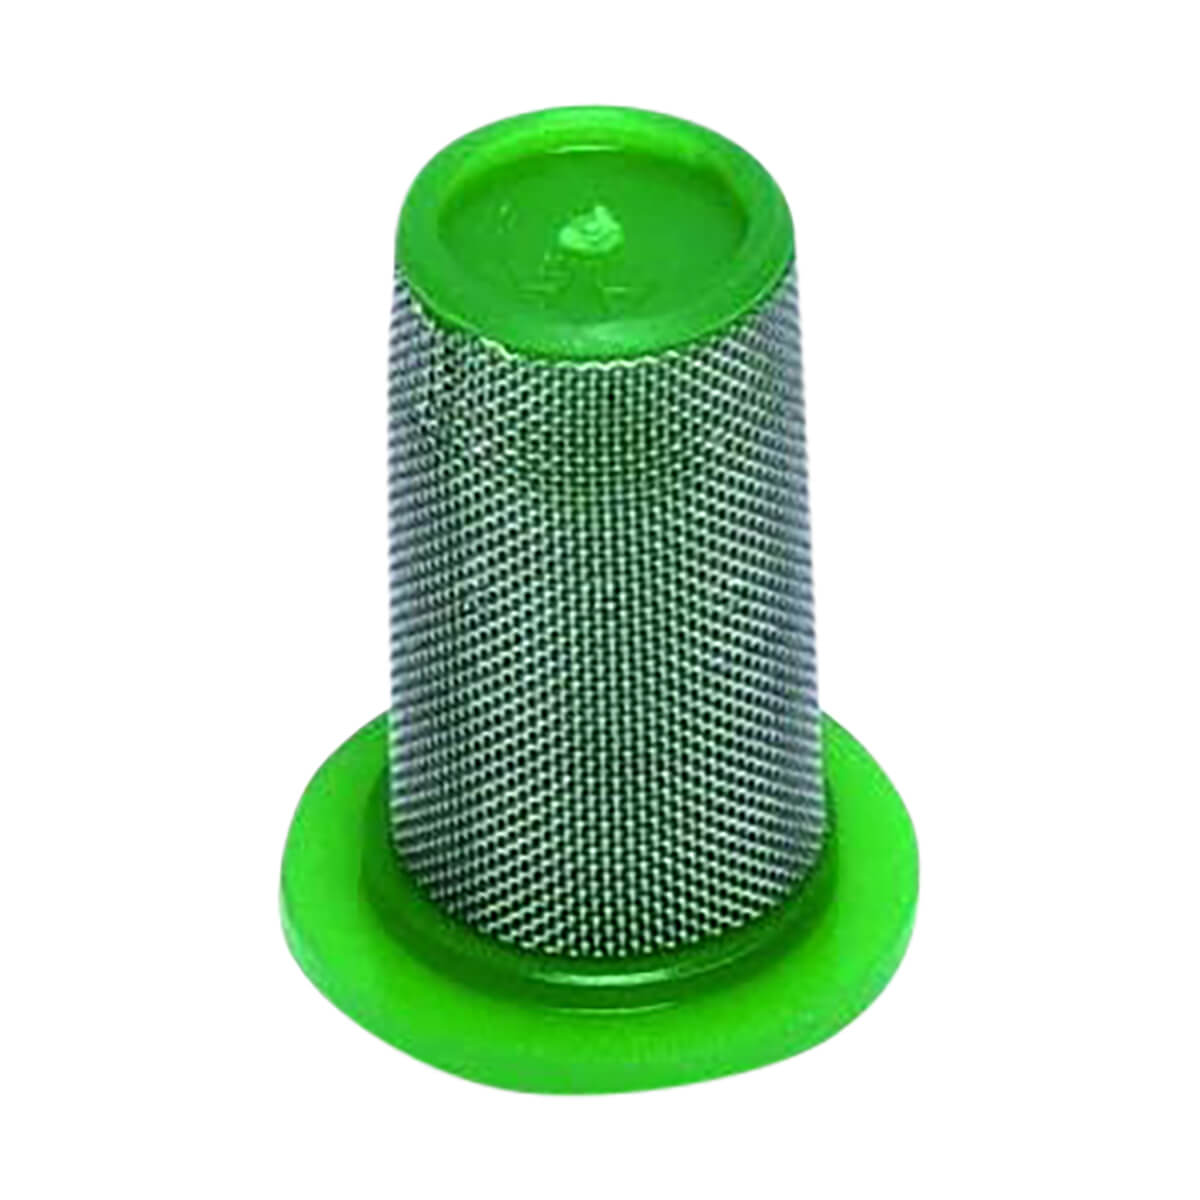 Nozzle Filter 100 Mesh Green Stainless Steel Teejet